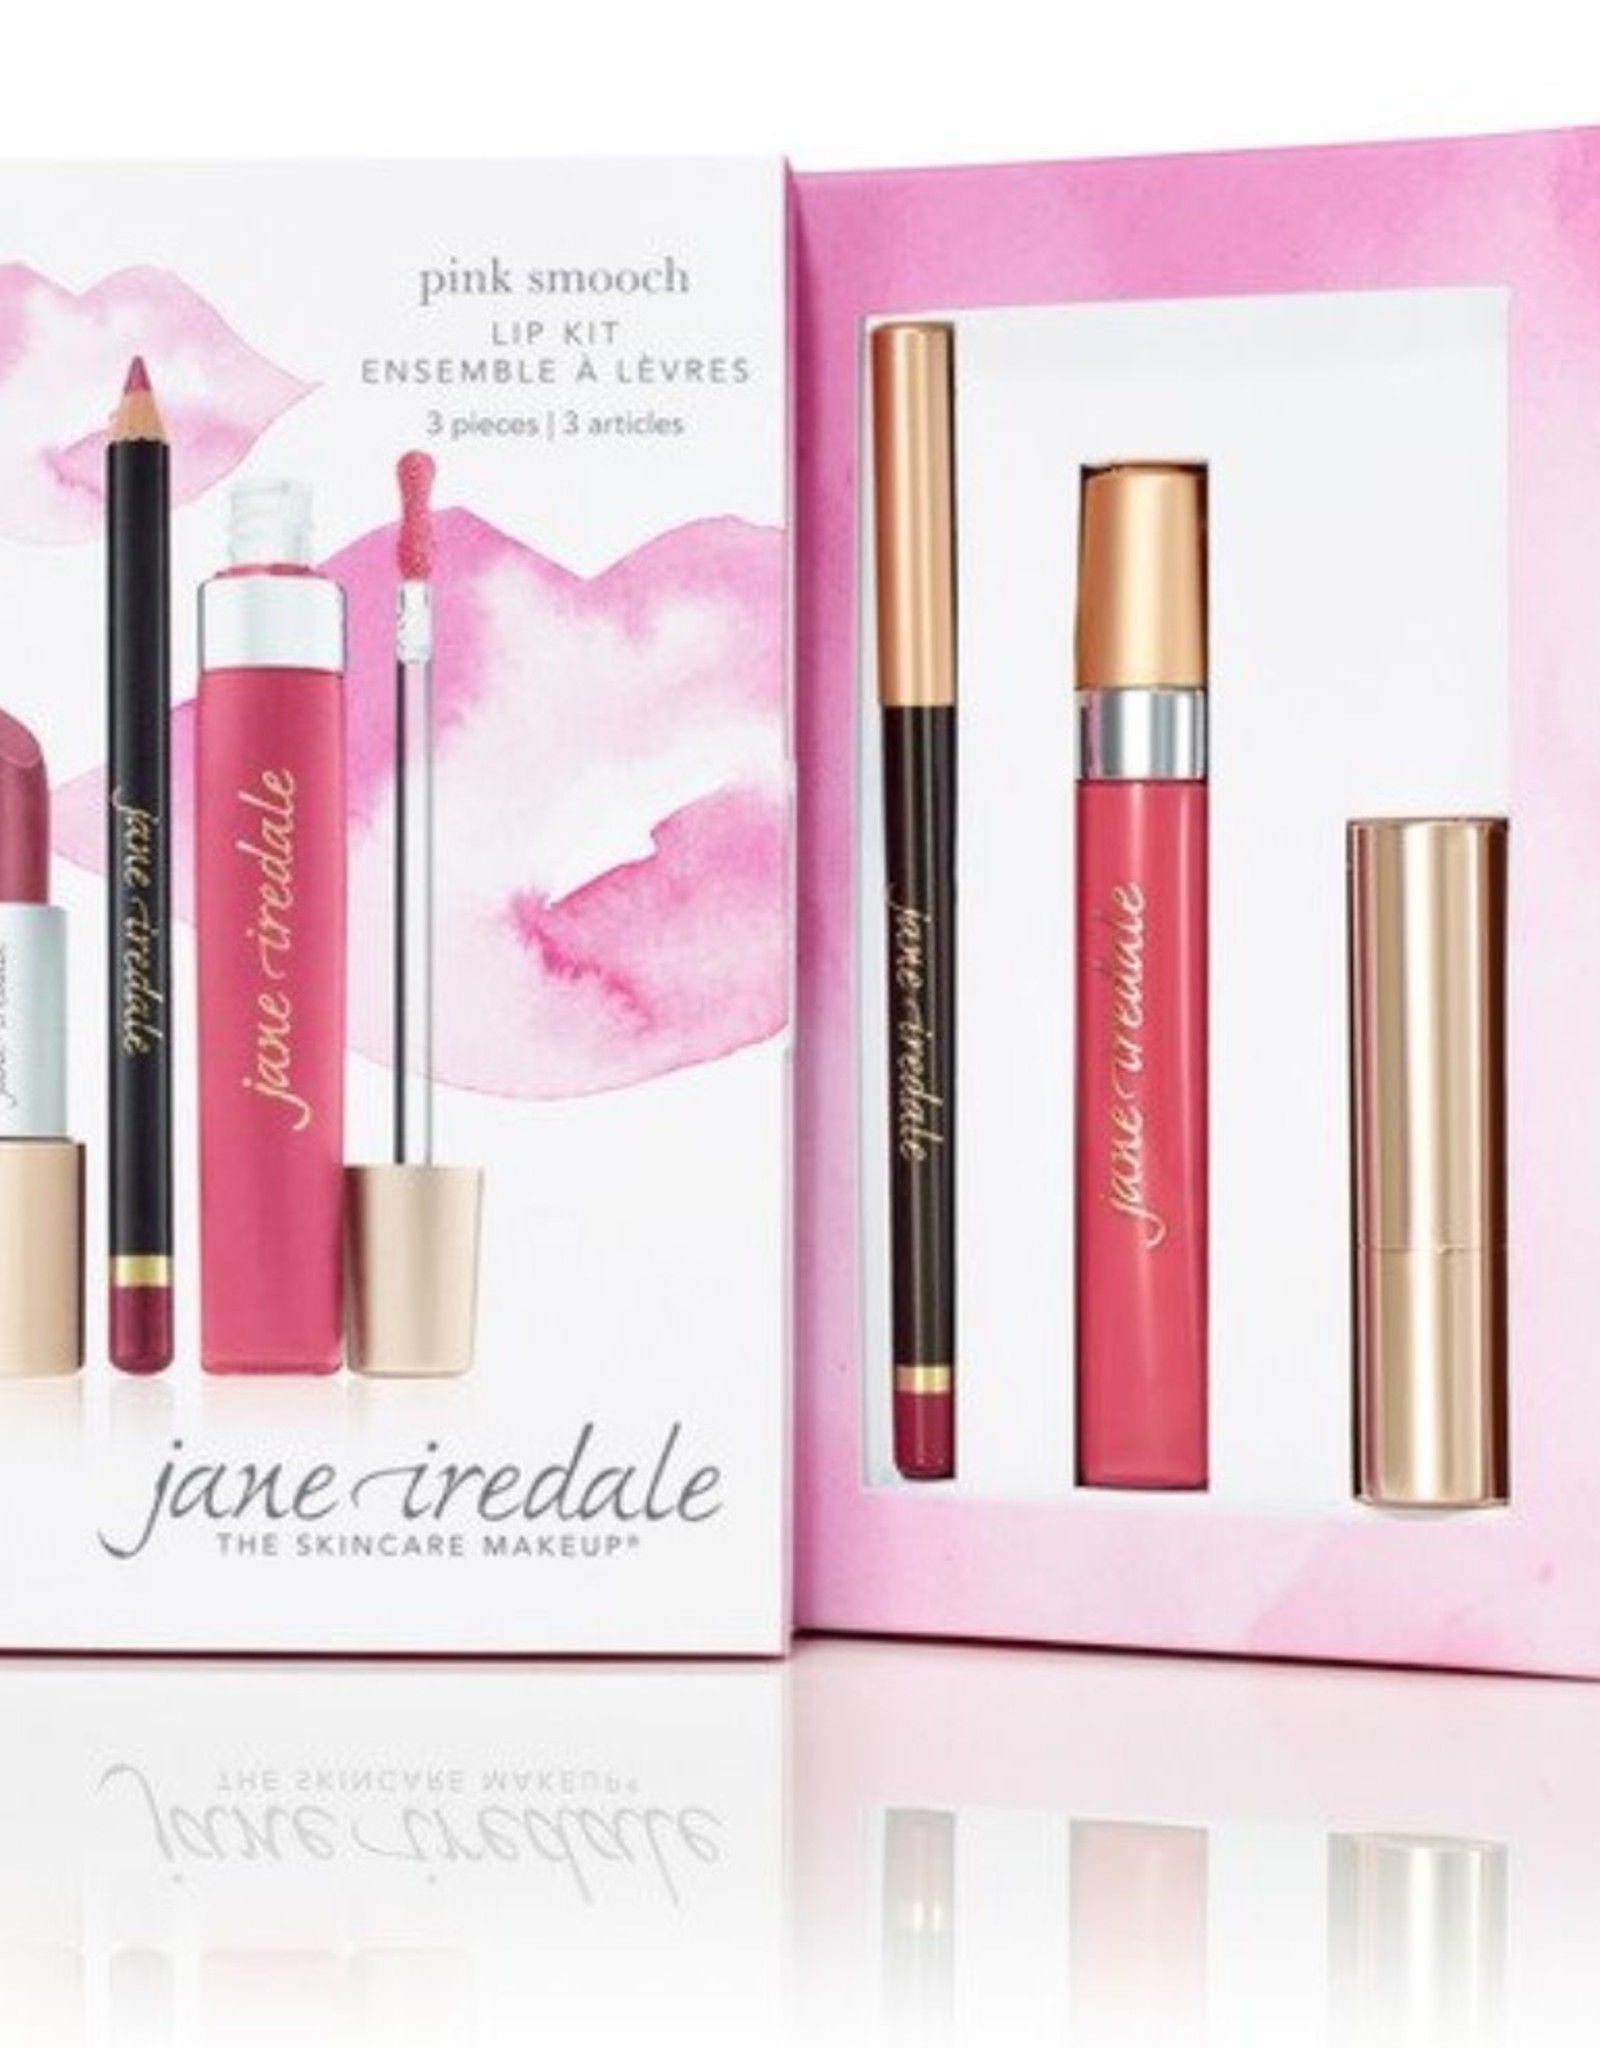 jane iredale Pink smooch lip trio